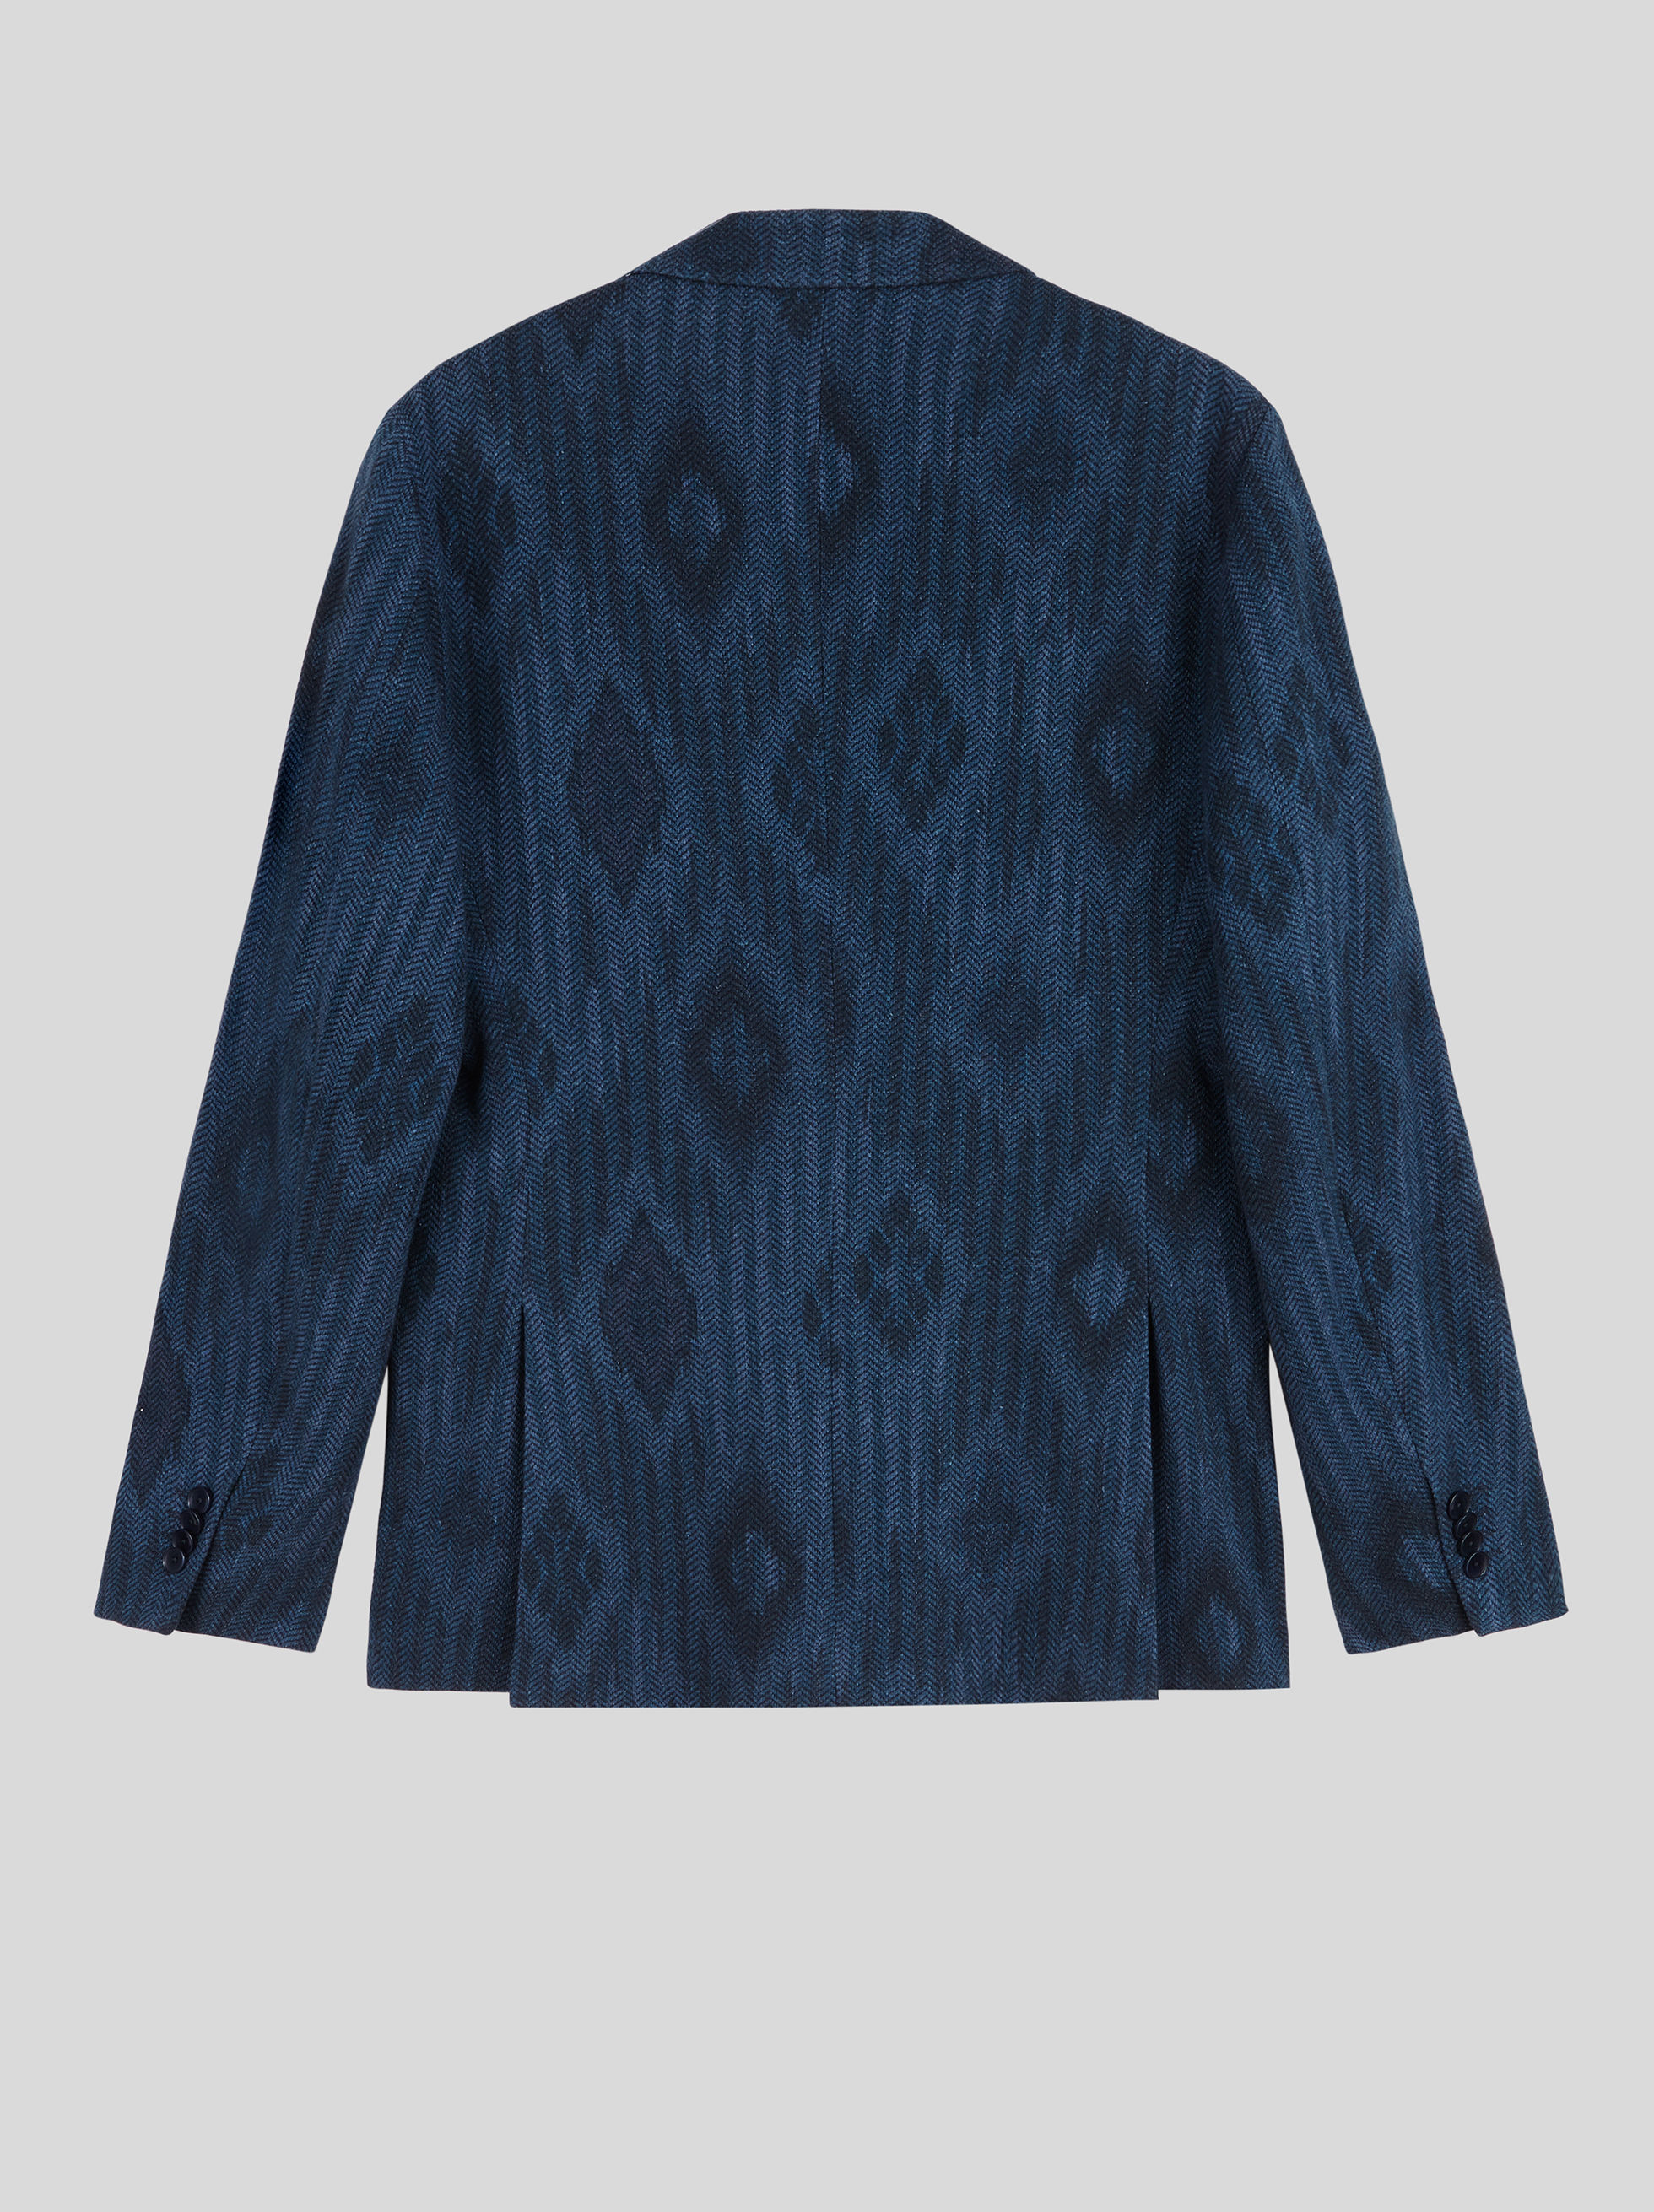 GEOMETRIC PATTERN JERSEY JACKET